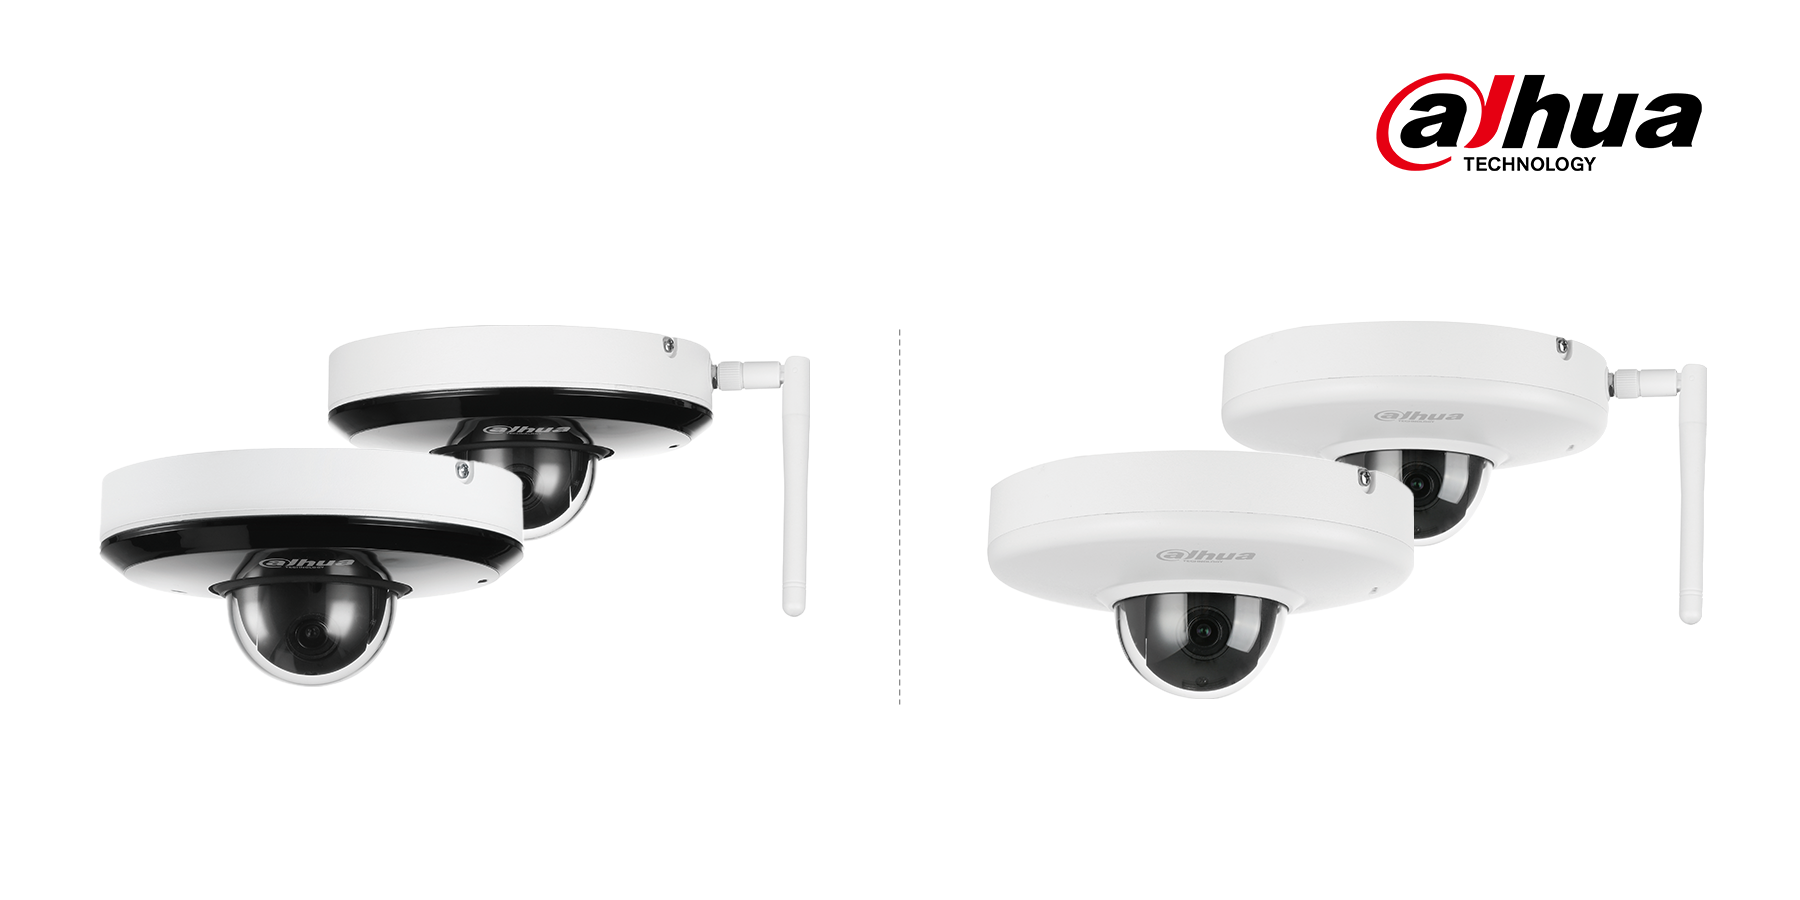 Dahua's PT/PTZ IR cameras are compact in design to bring users more convenience